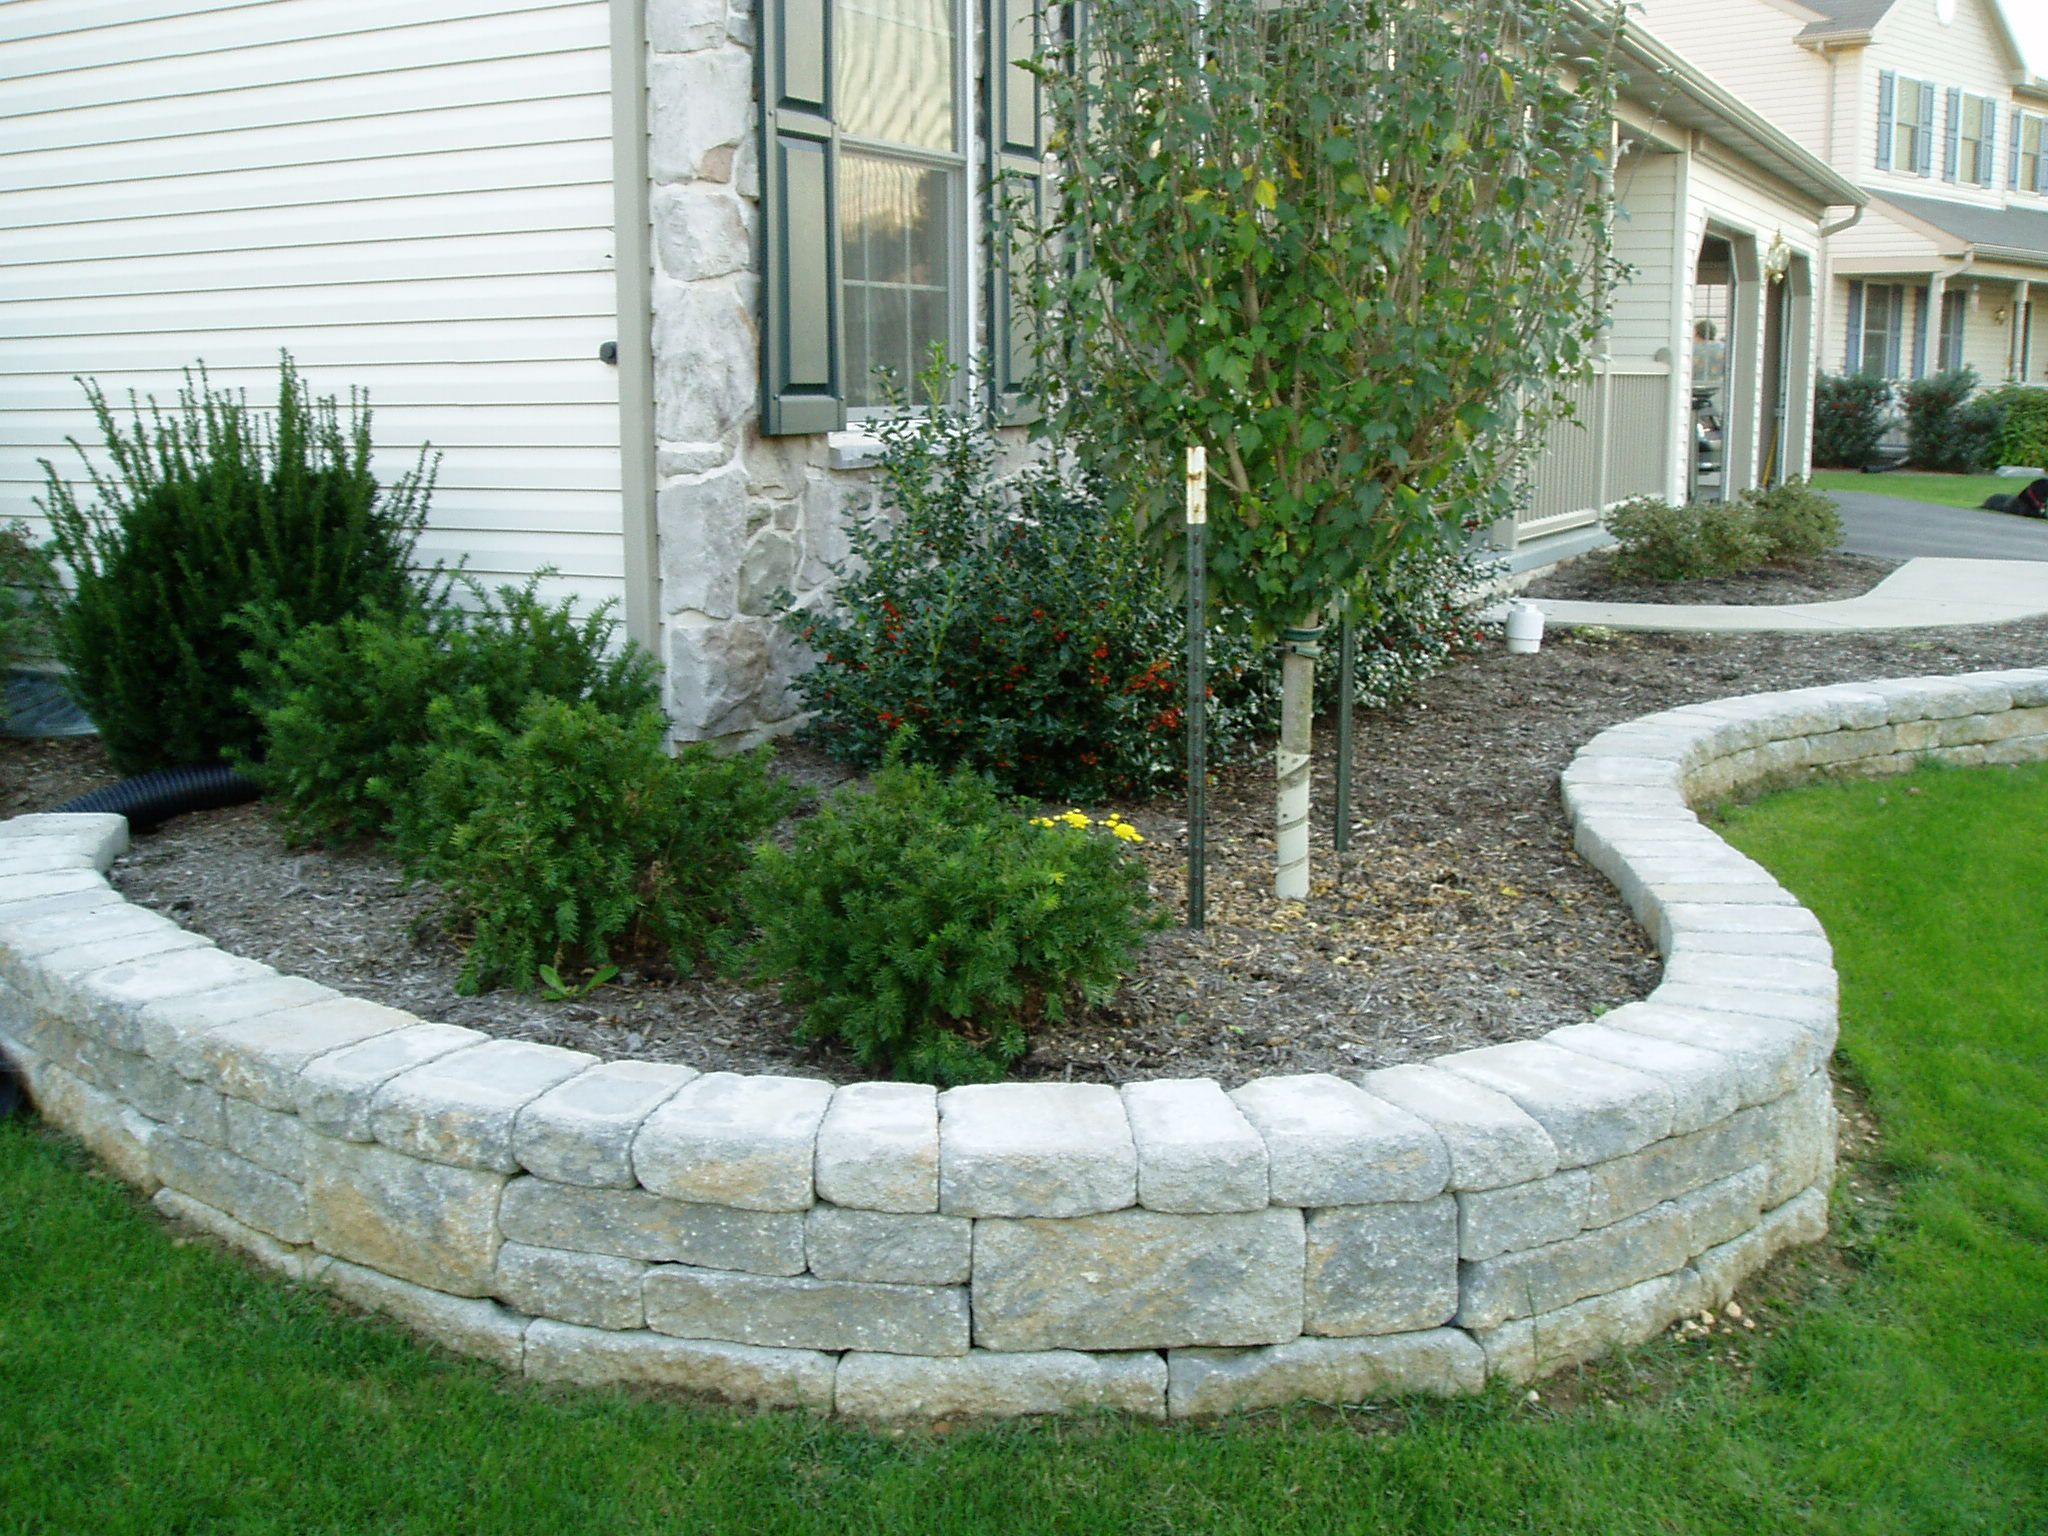 Landscaping outdoor space pinterest landscaping for Outdoor retaining wall ideas